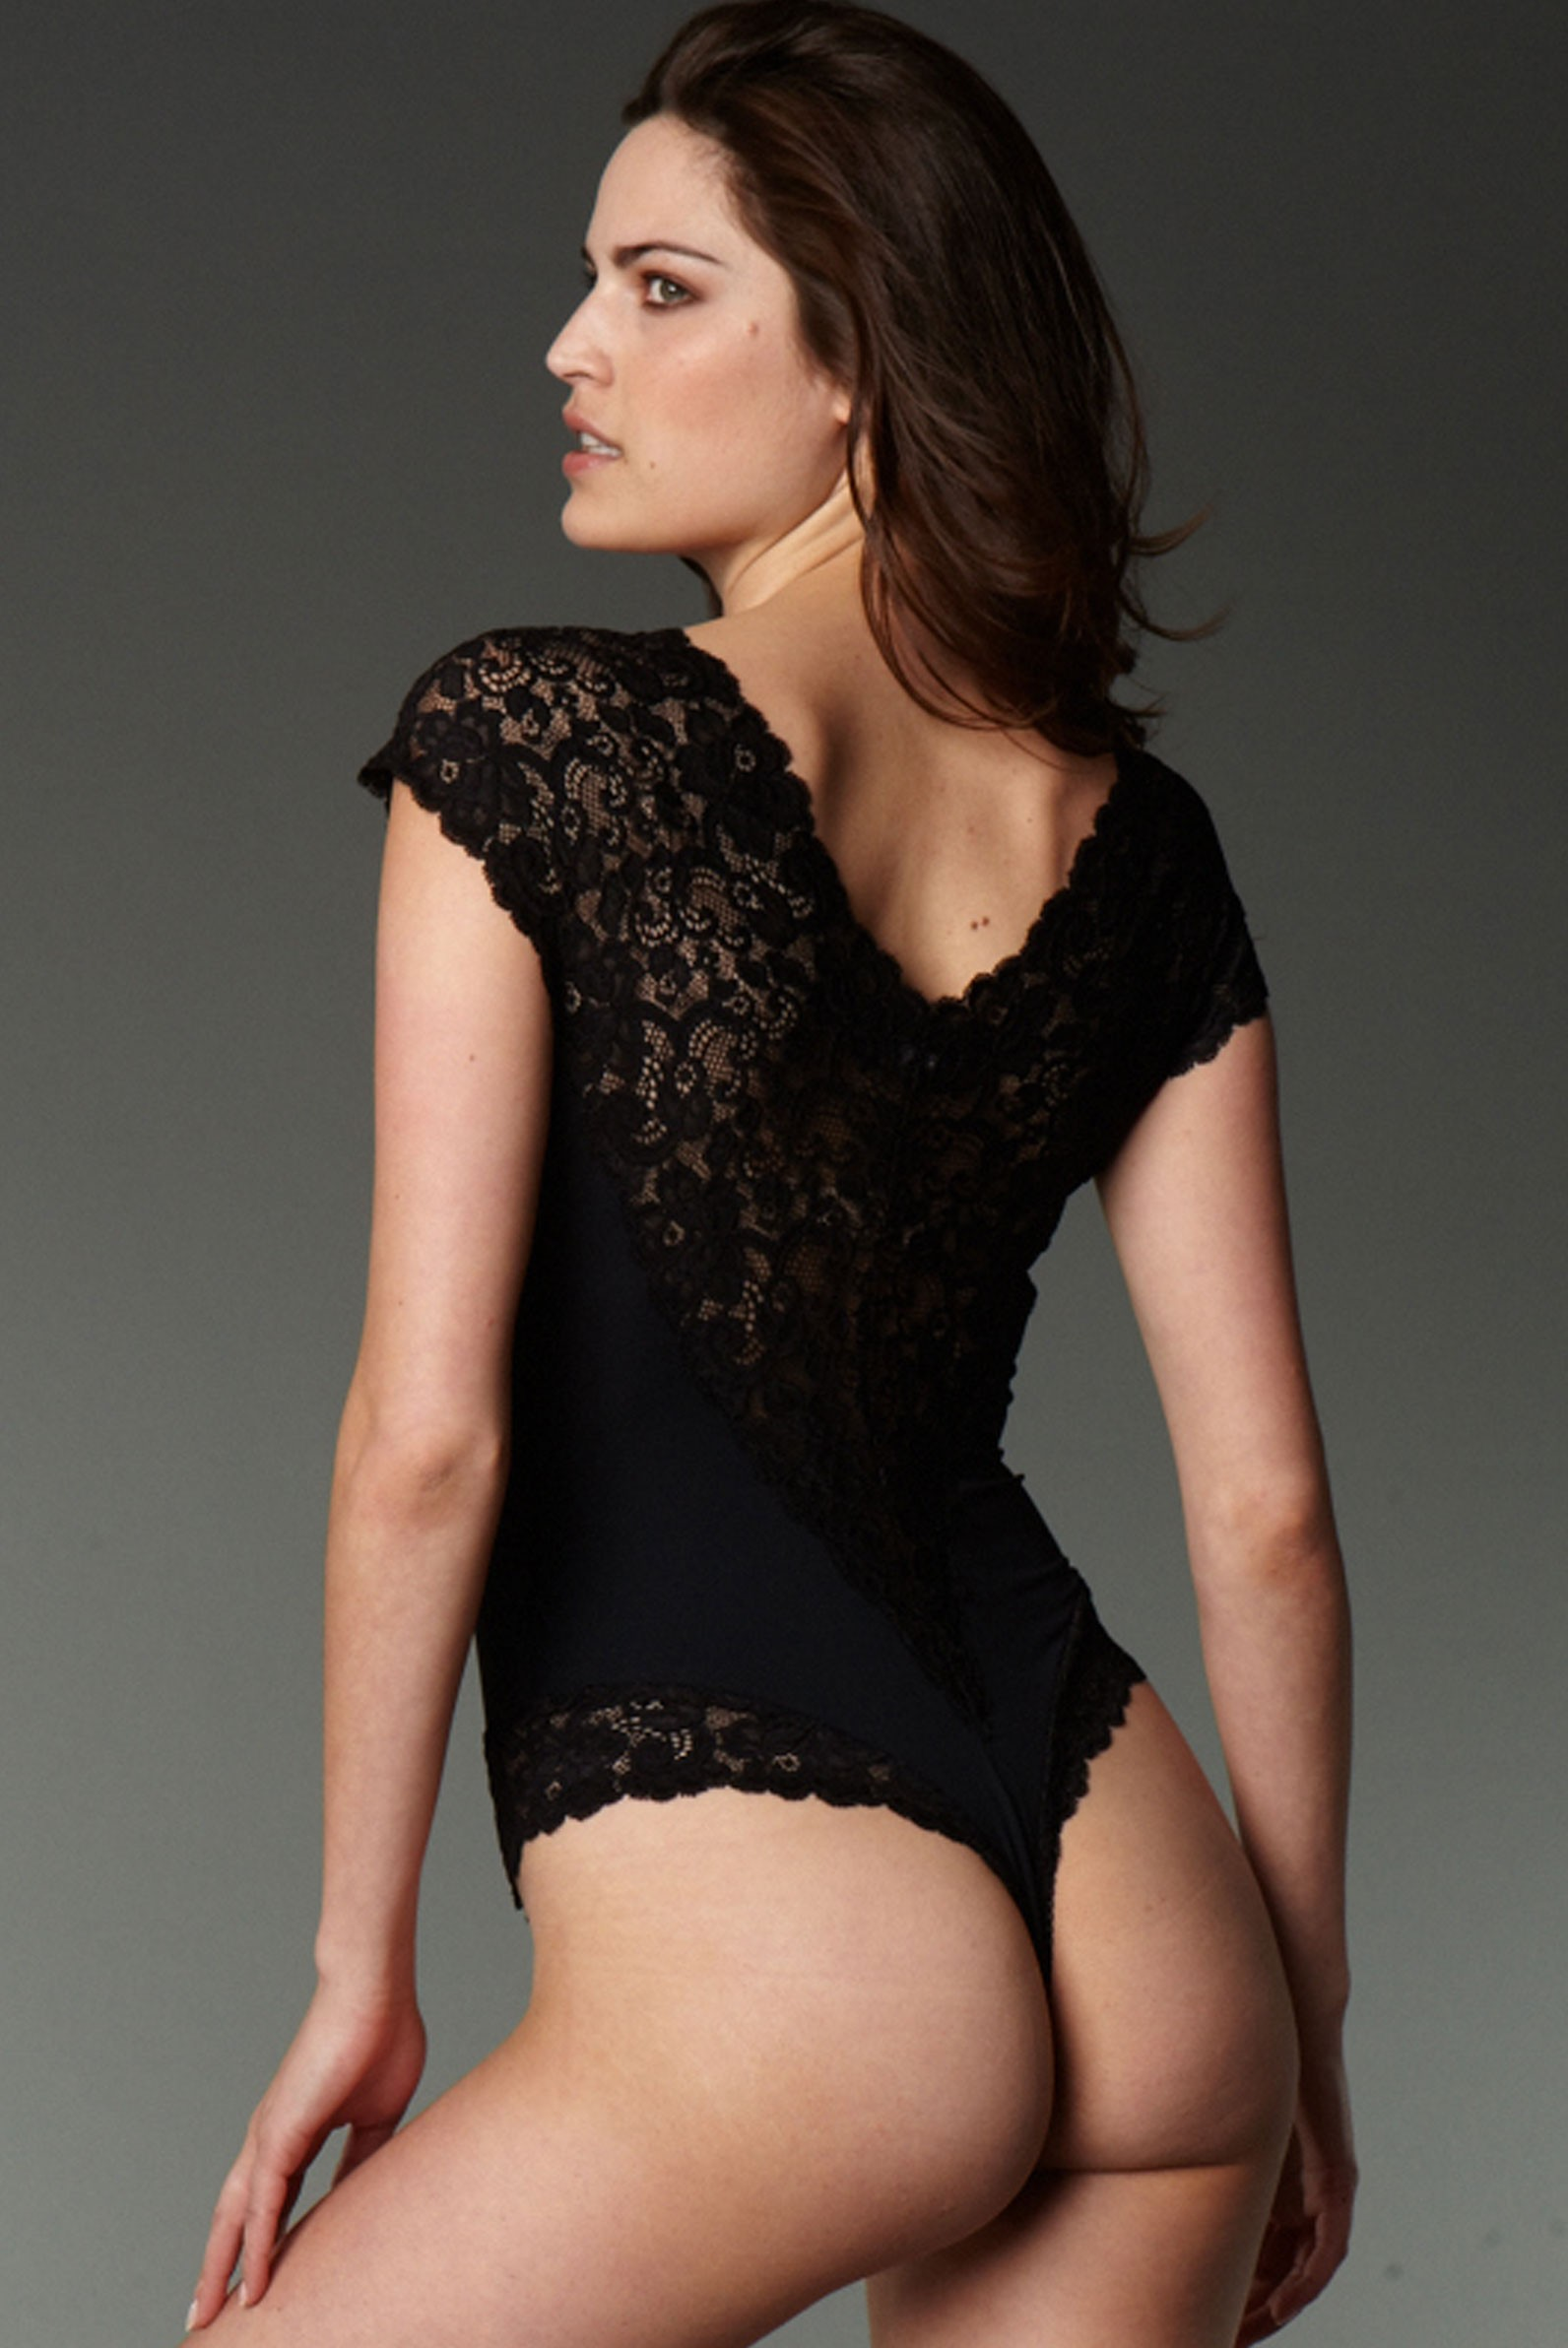 bodysuit string jersey and lace anti flirt. Black Bedroom Furniture Sets. Home Design Ideas